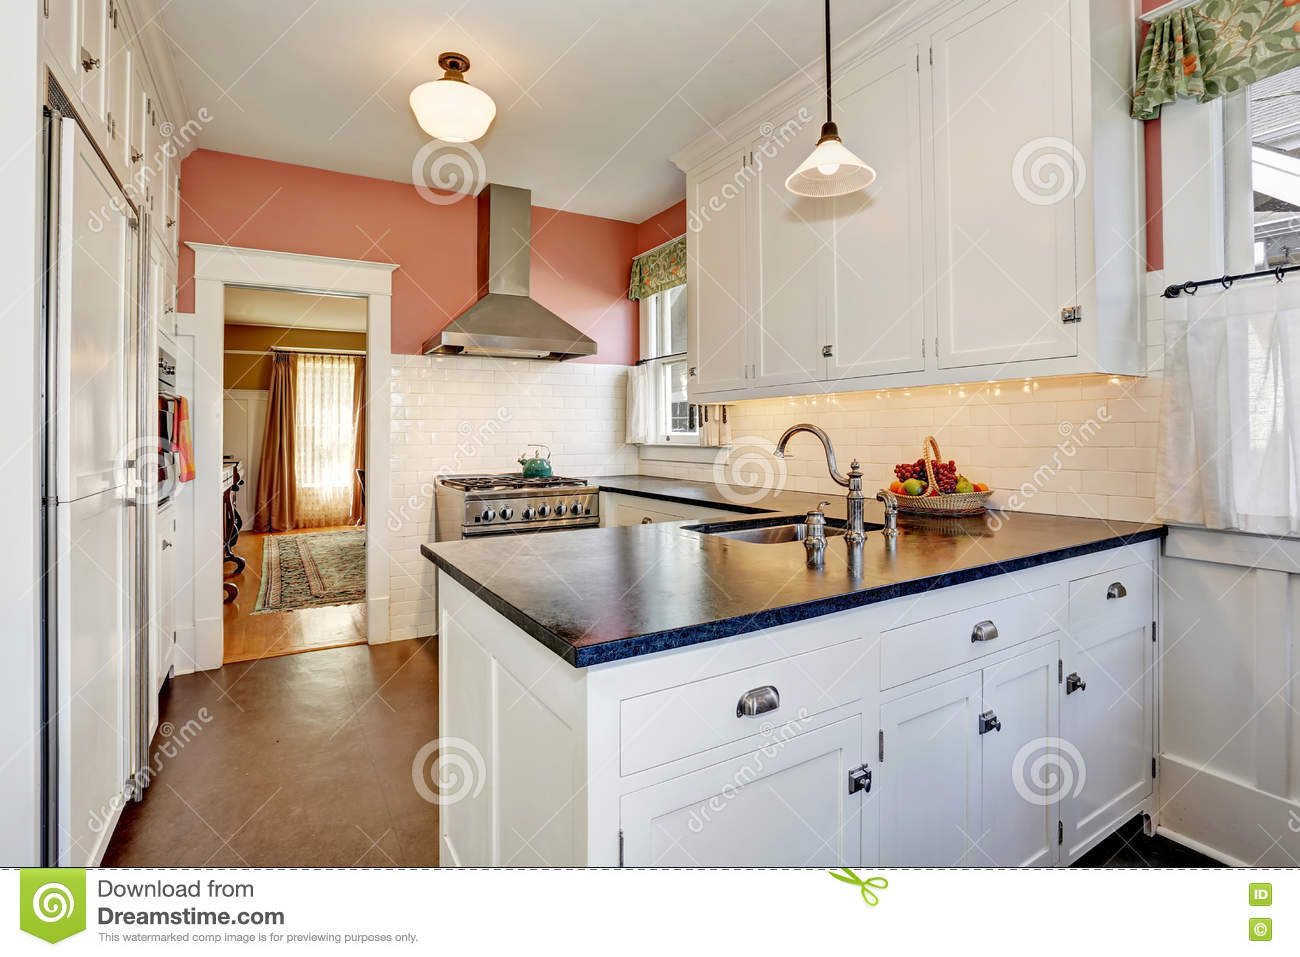 Classic Kitchen Room With White Cabinets Granite Counter Top And Hardwood Floor Stock Image Image Of Home House 77322797